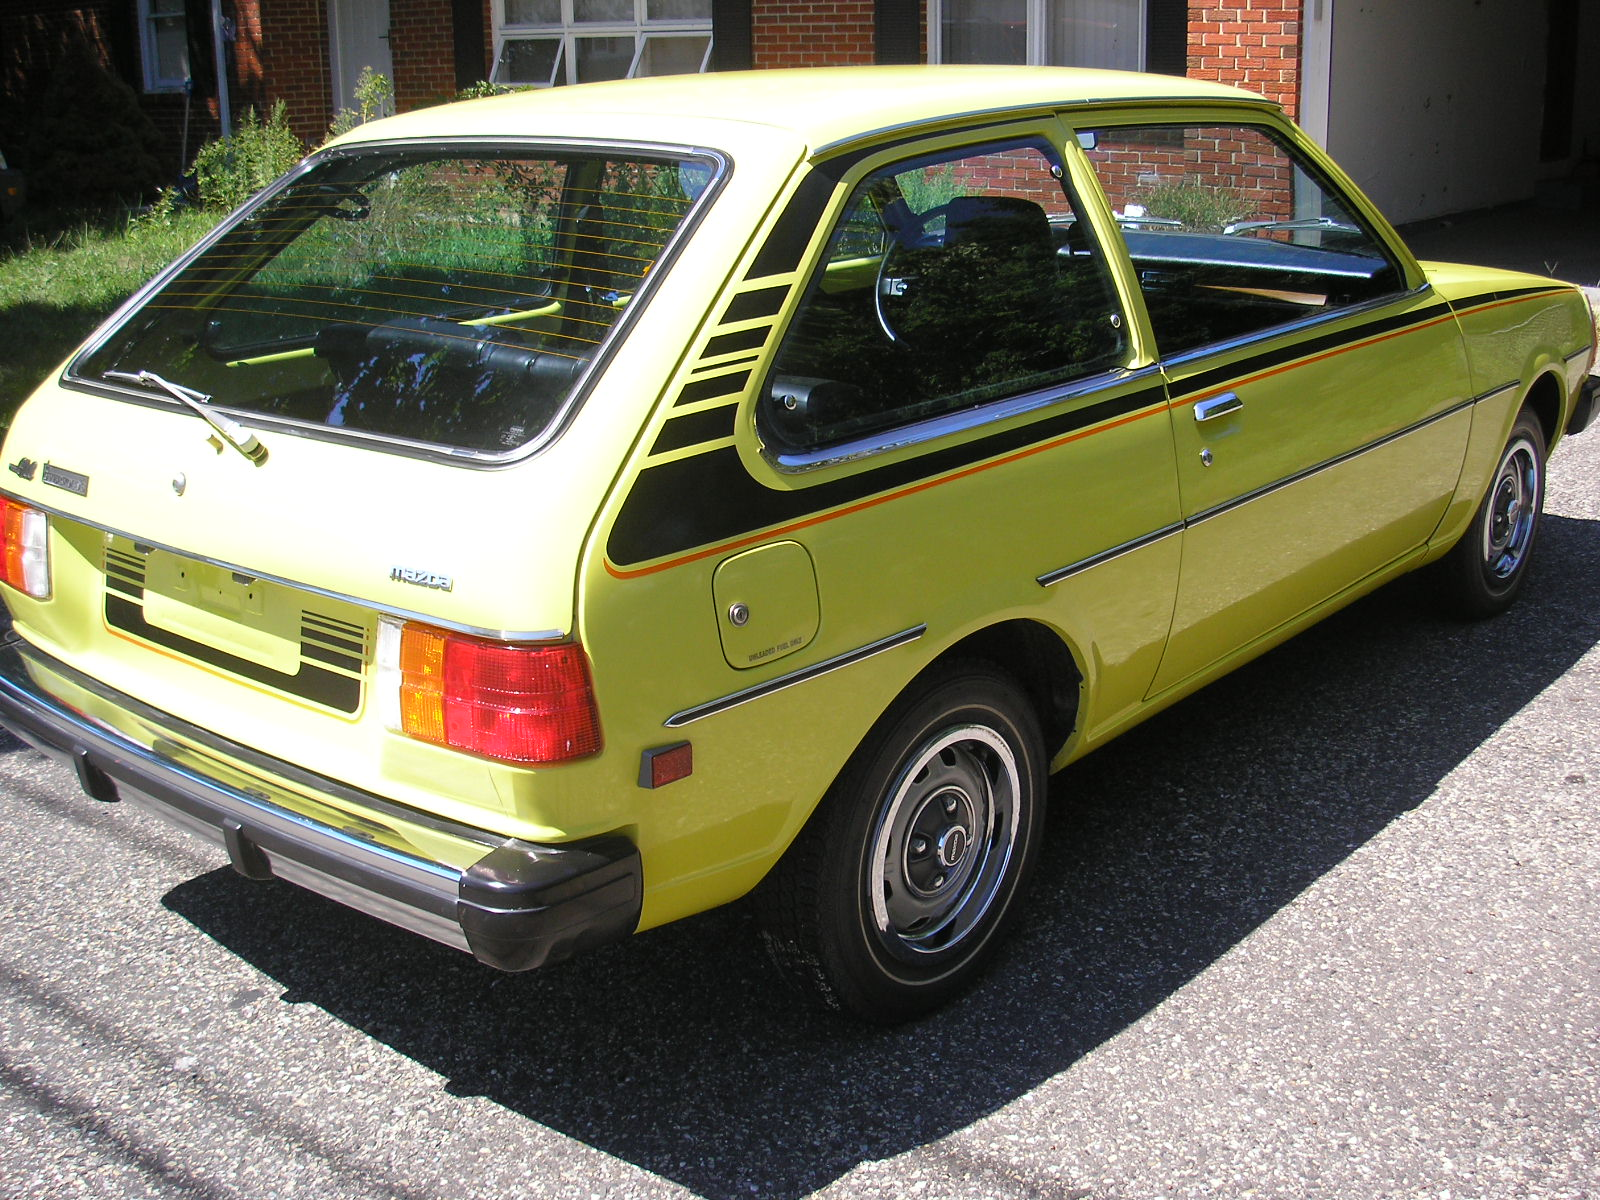 Mazda 323 1981  Review  Amazing Pictures And Images  U2013 Look At The Car